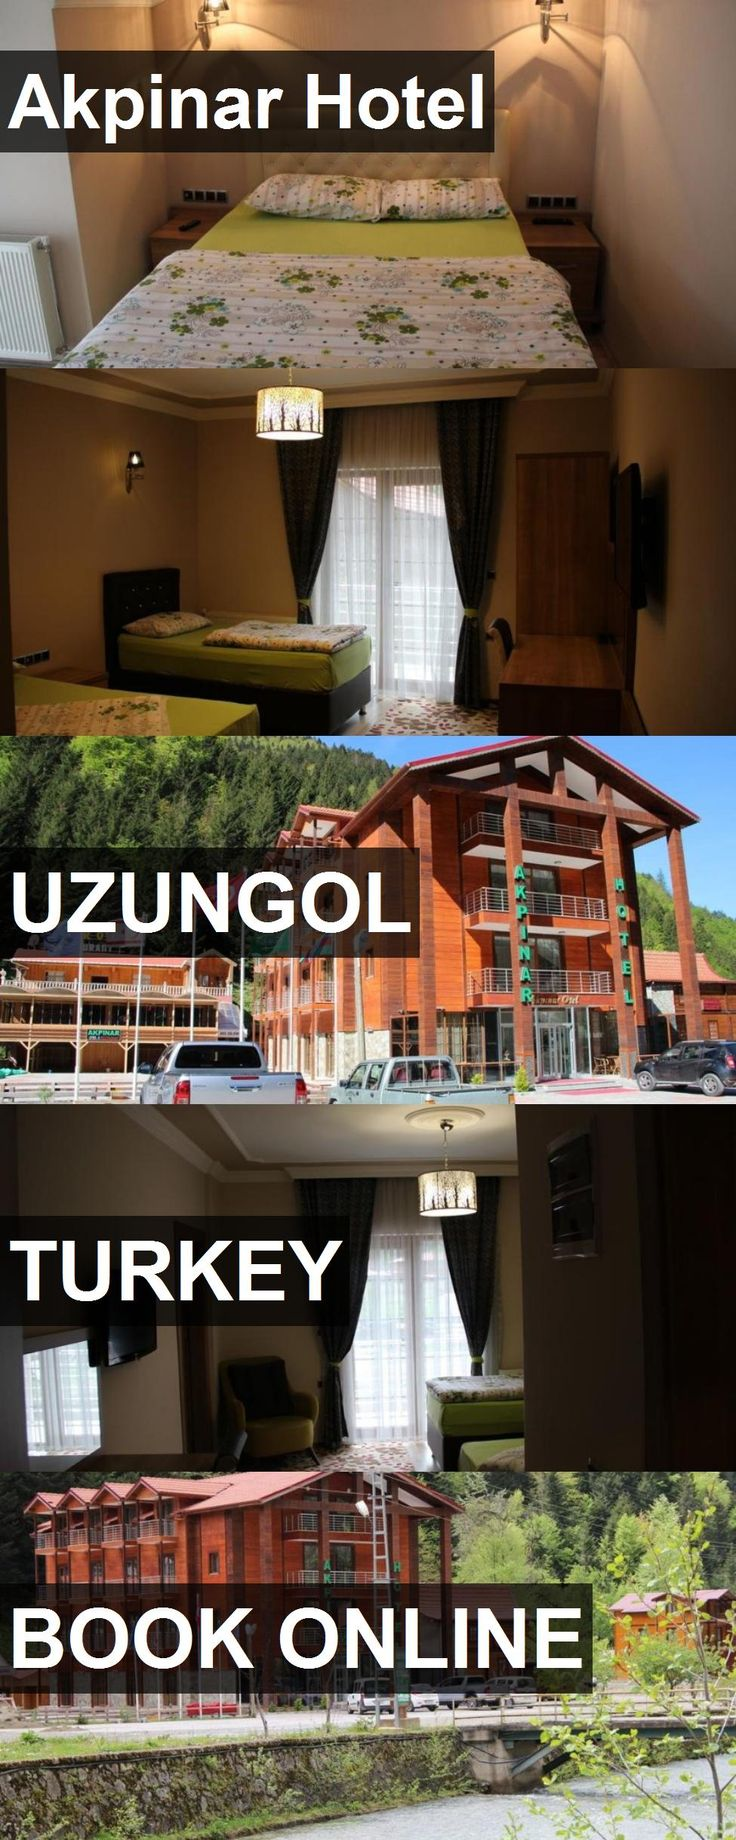 Akpinar Hotel in Uzungol, Turkey. For more information, photos, reviews and best prices please follow the link. #Turkey #Uzungol #travel #vacation #hotel